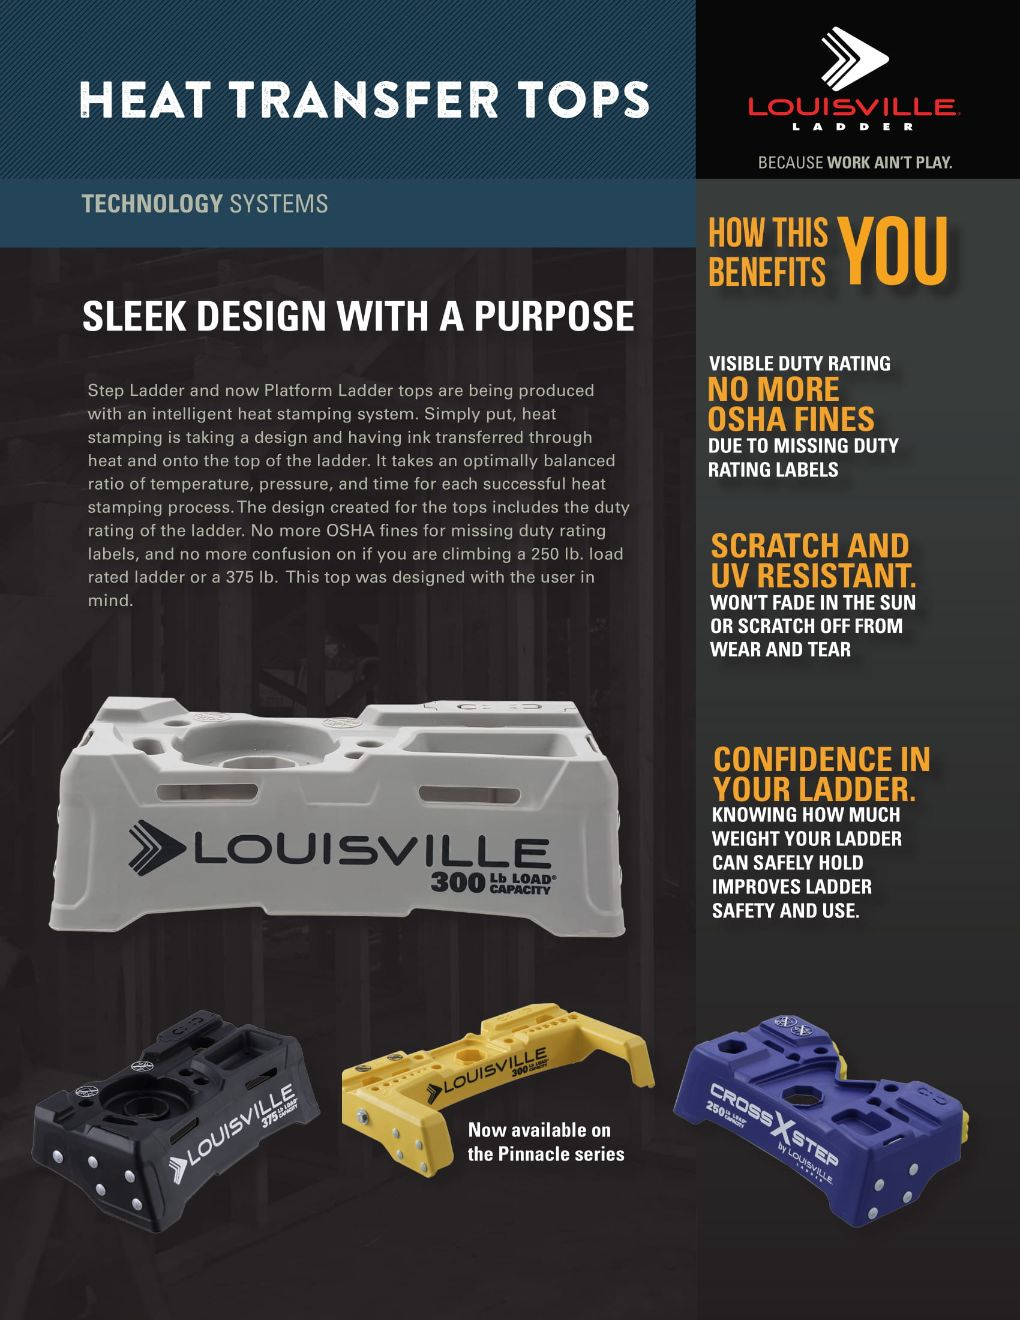 Heat Transfer Tops Flyer and Spec Sheet Marketing Material Image